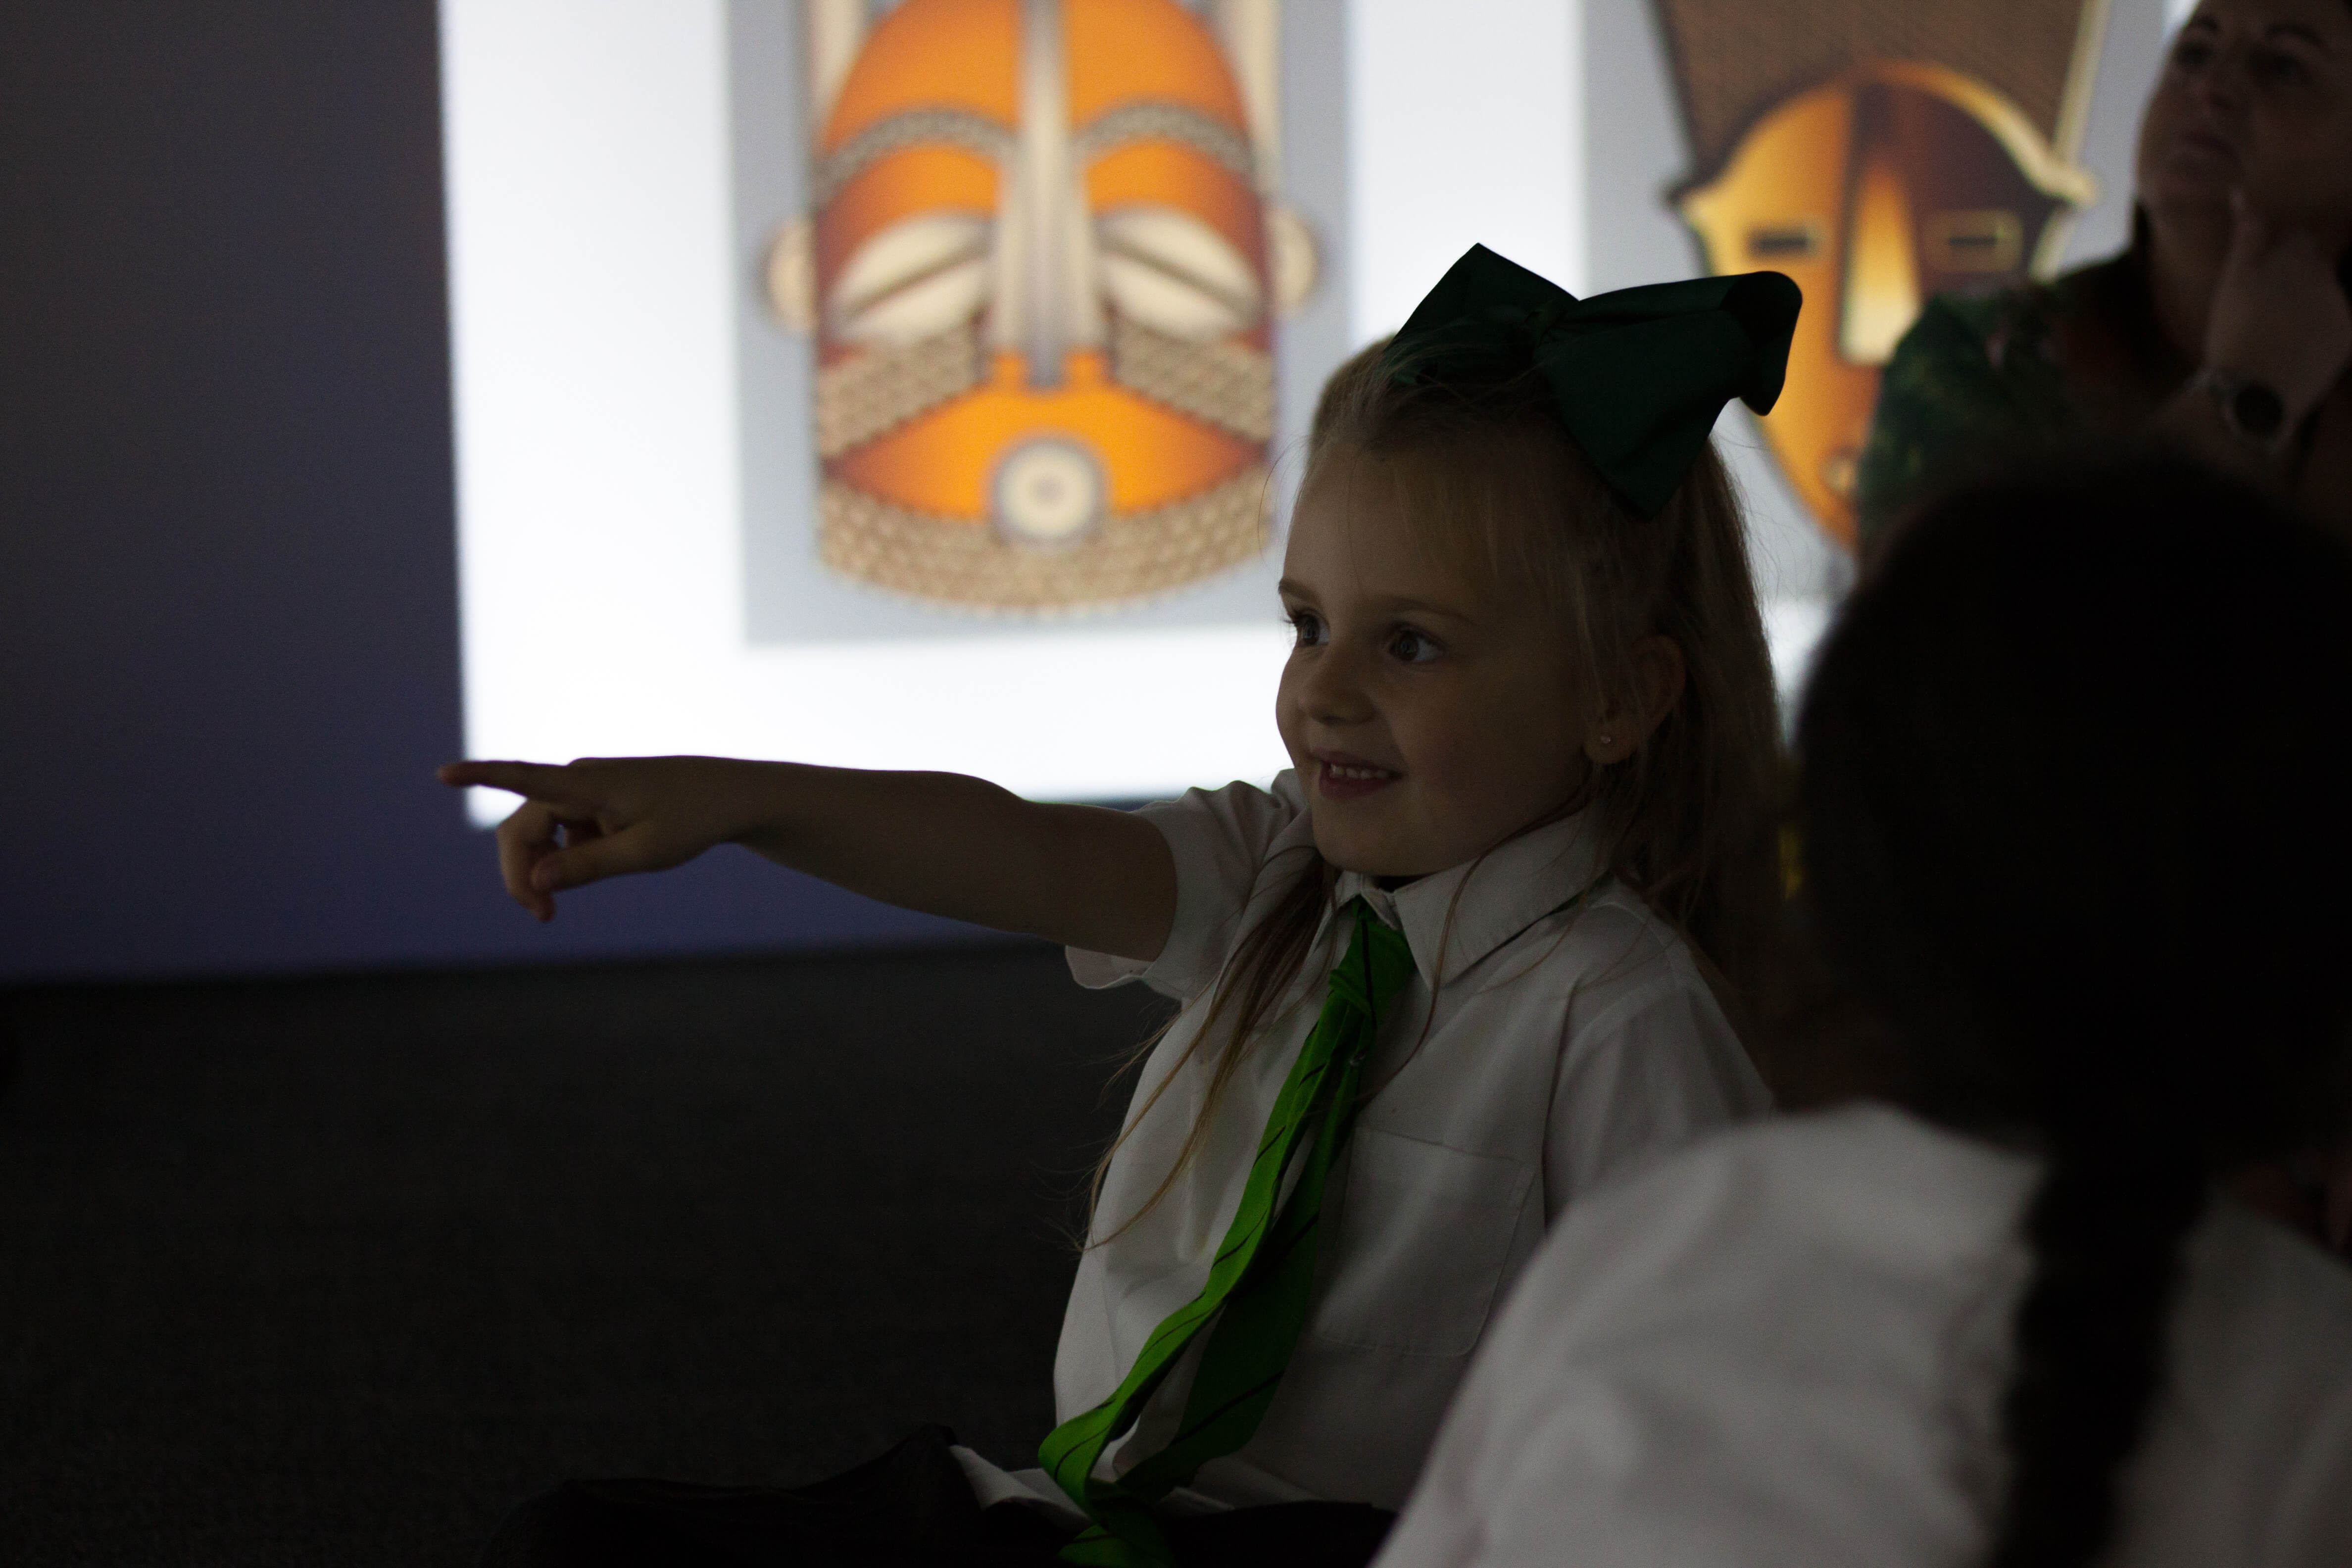 Further engagement in the Immersive Classroom